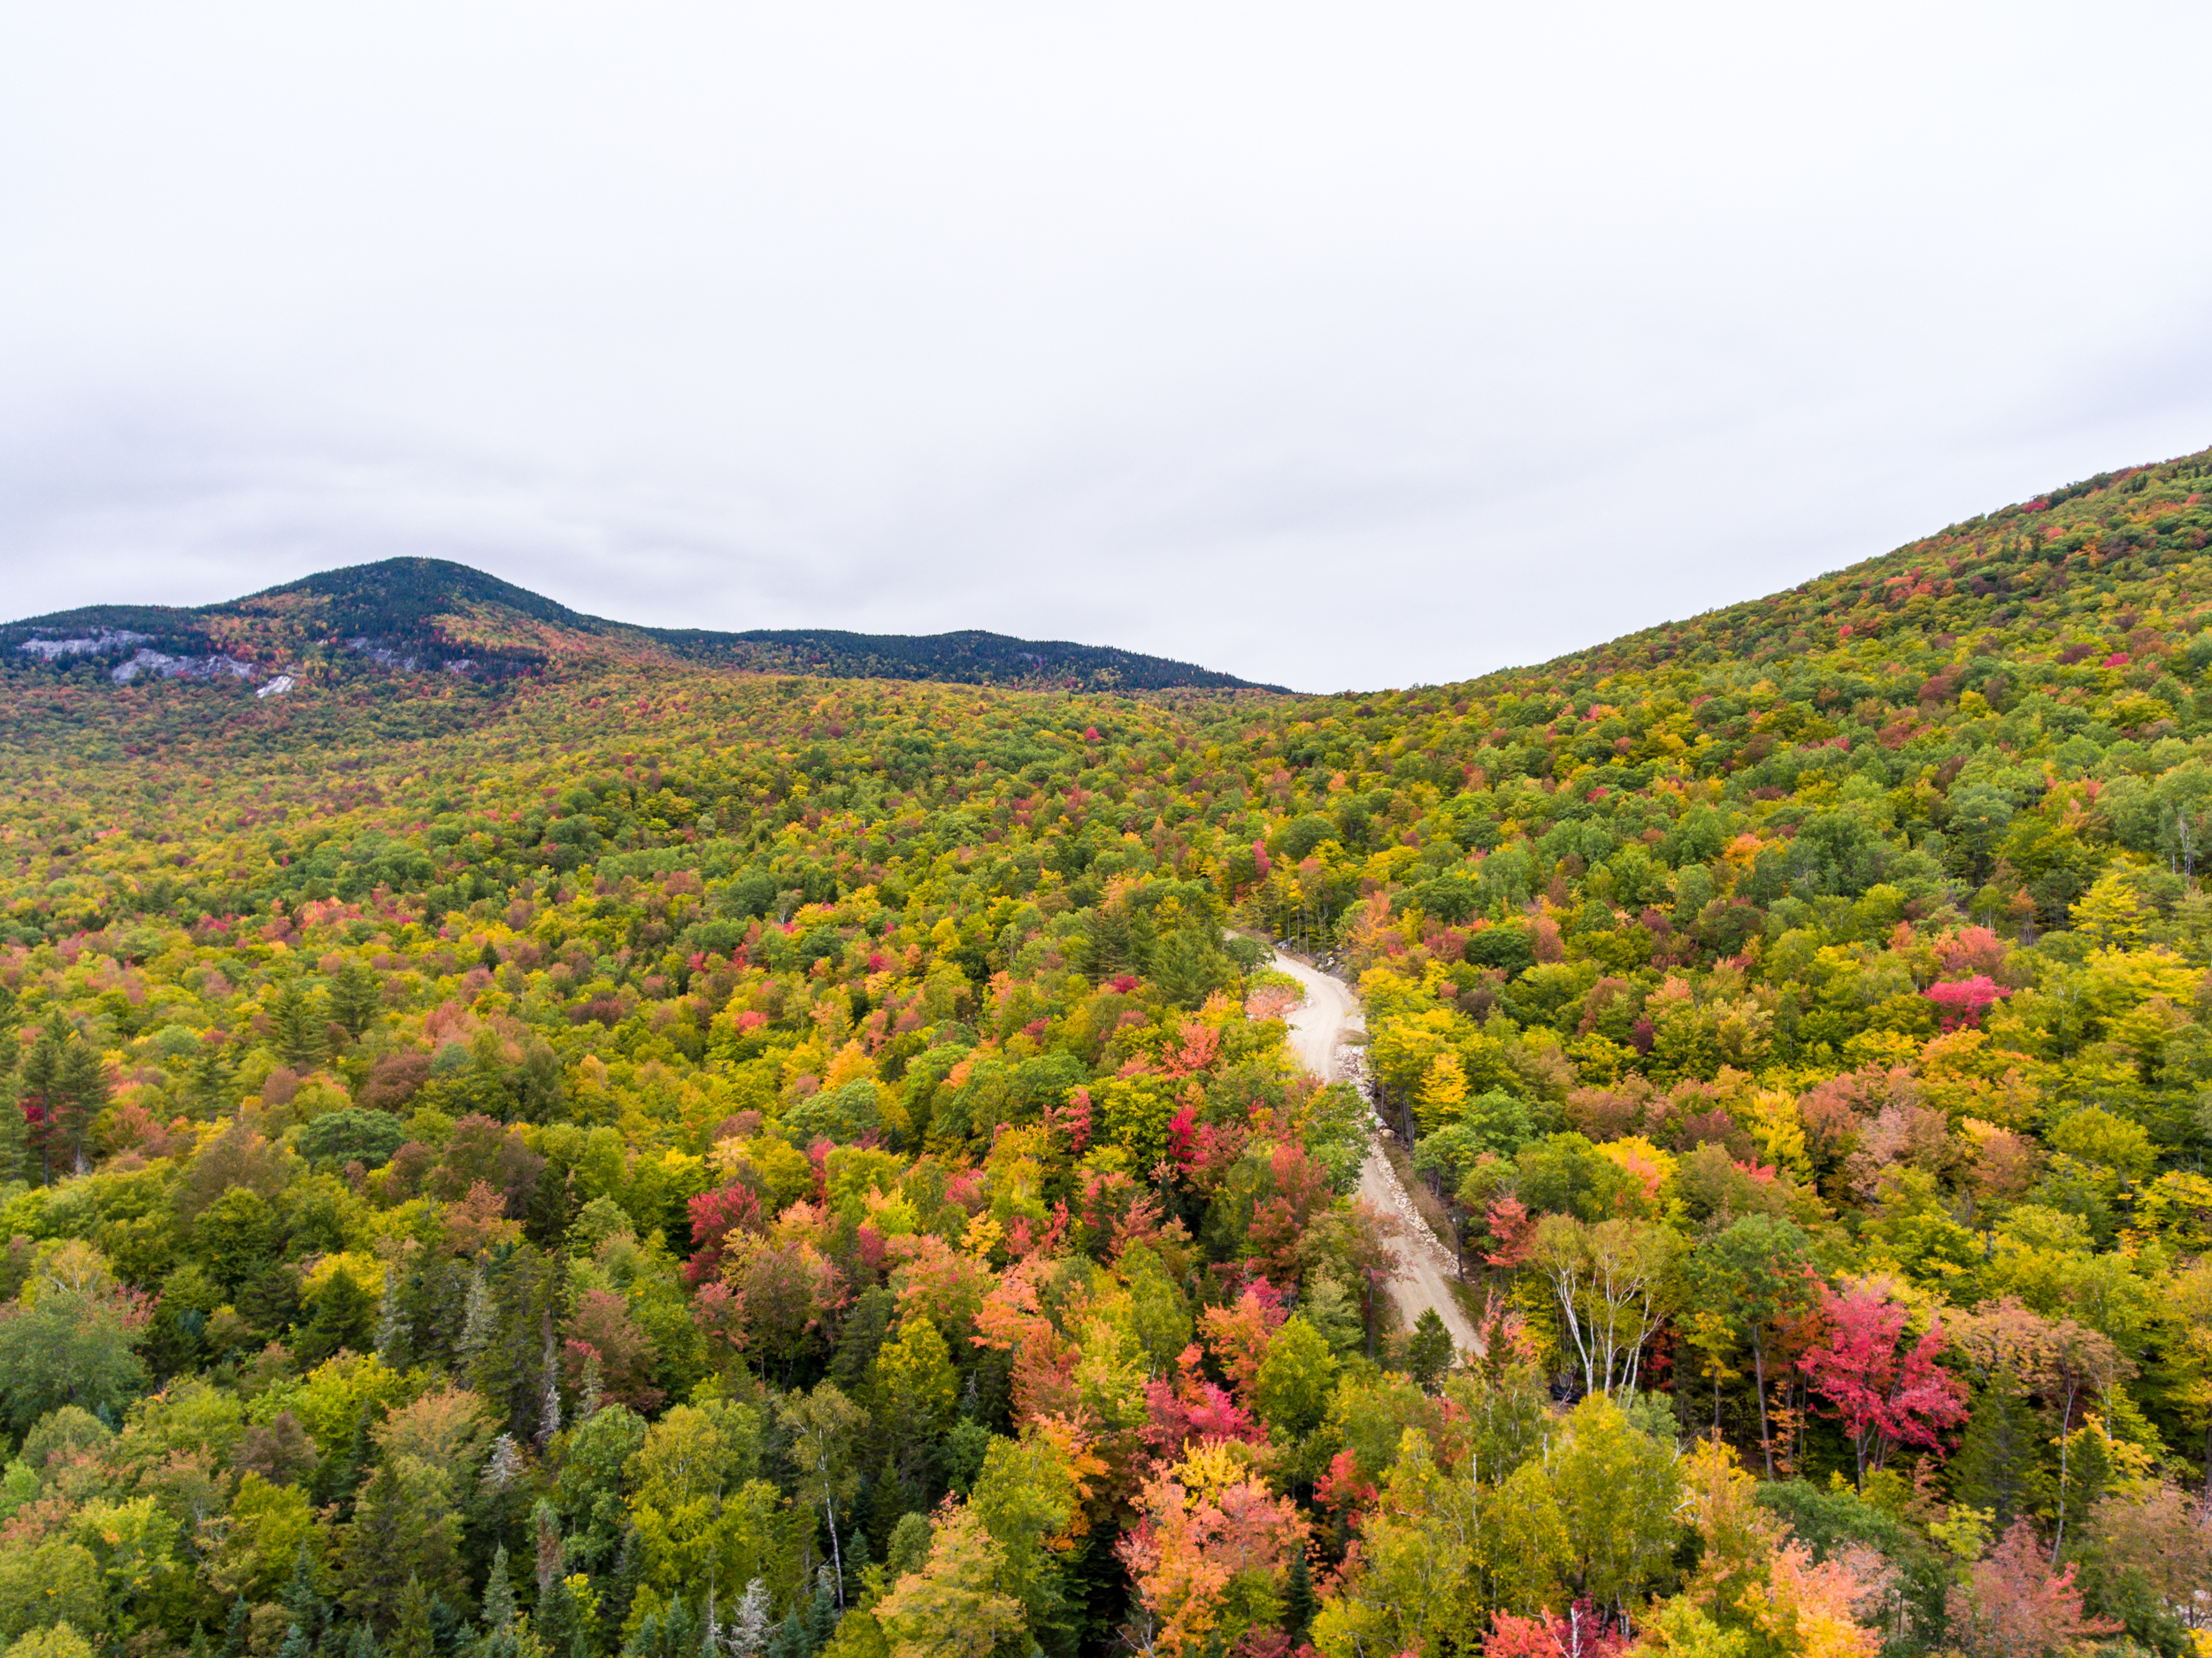 Foliage in Maine - October 1, 2016